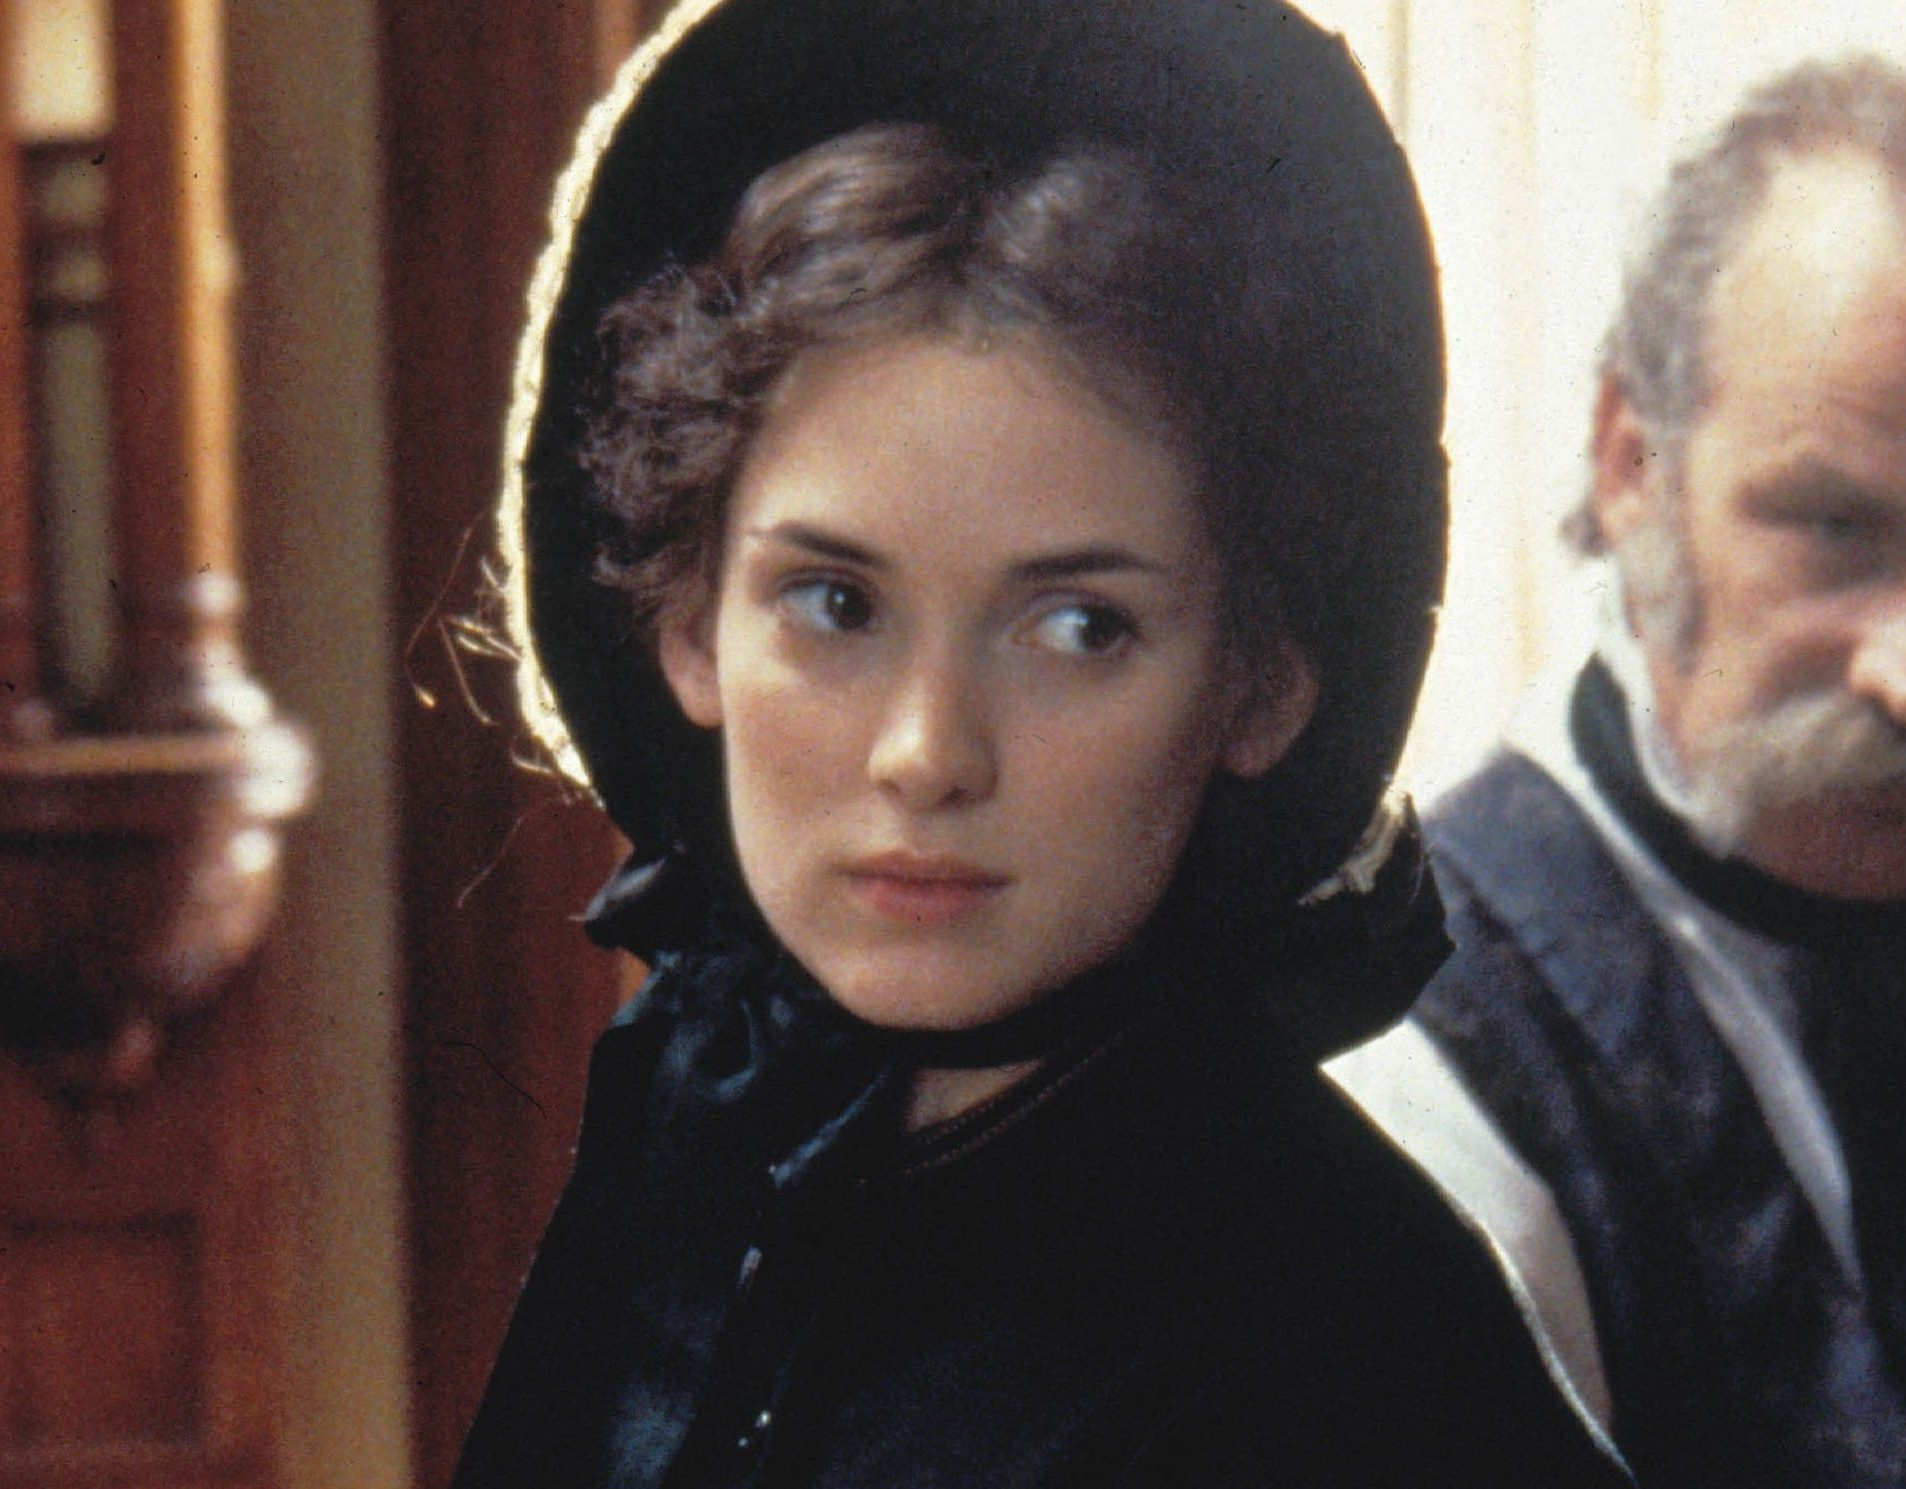 15 2 e1617289671576 20 Interesting Facts About Winona Ryder